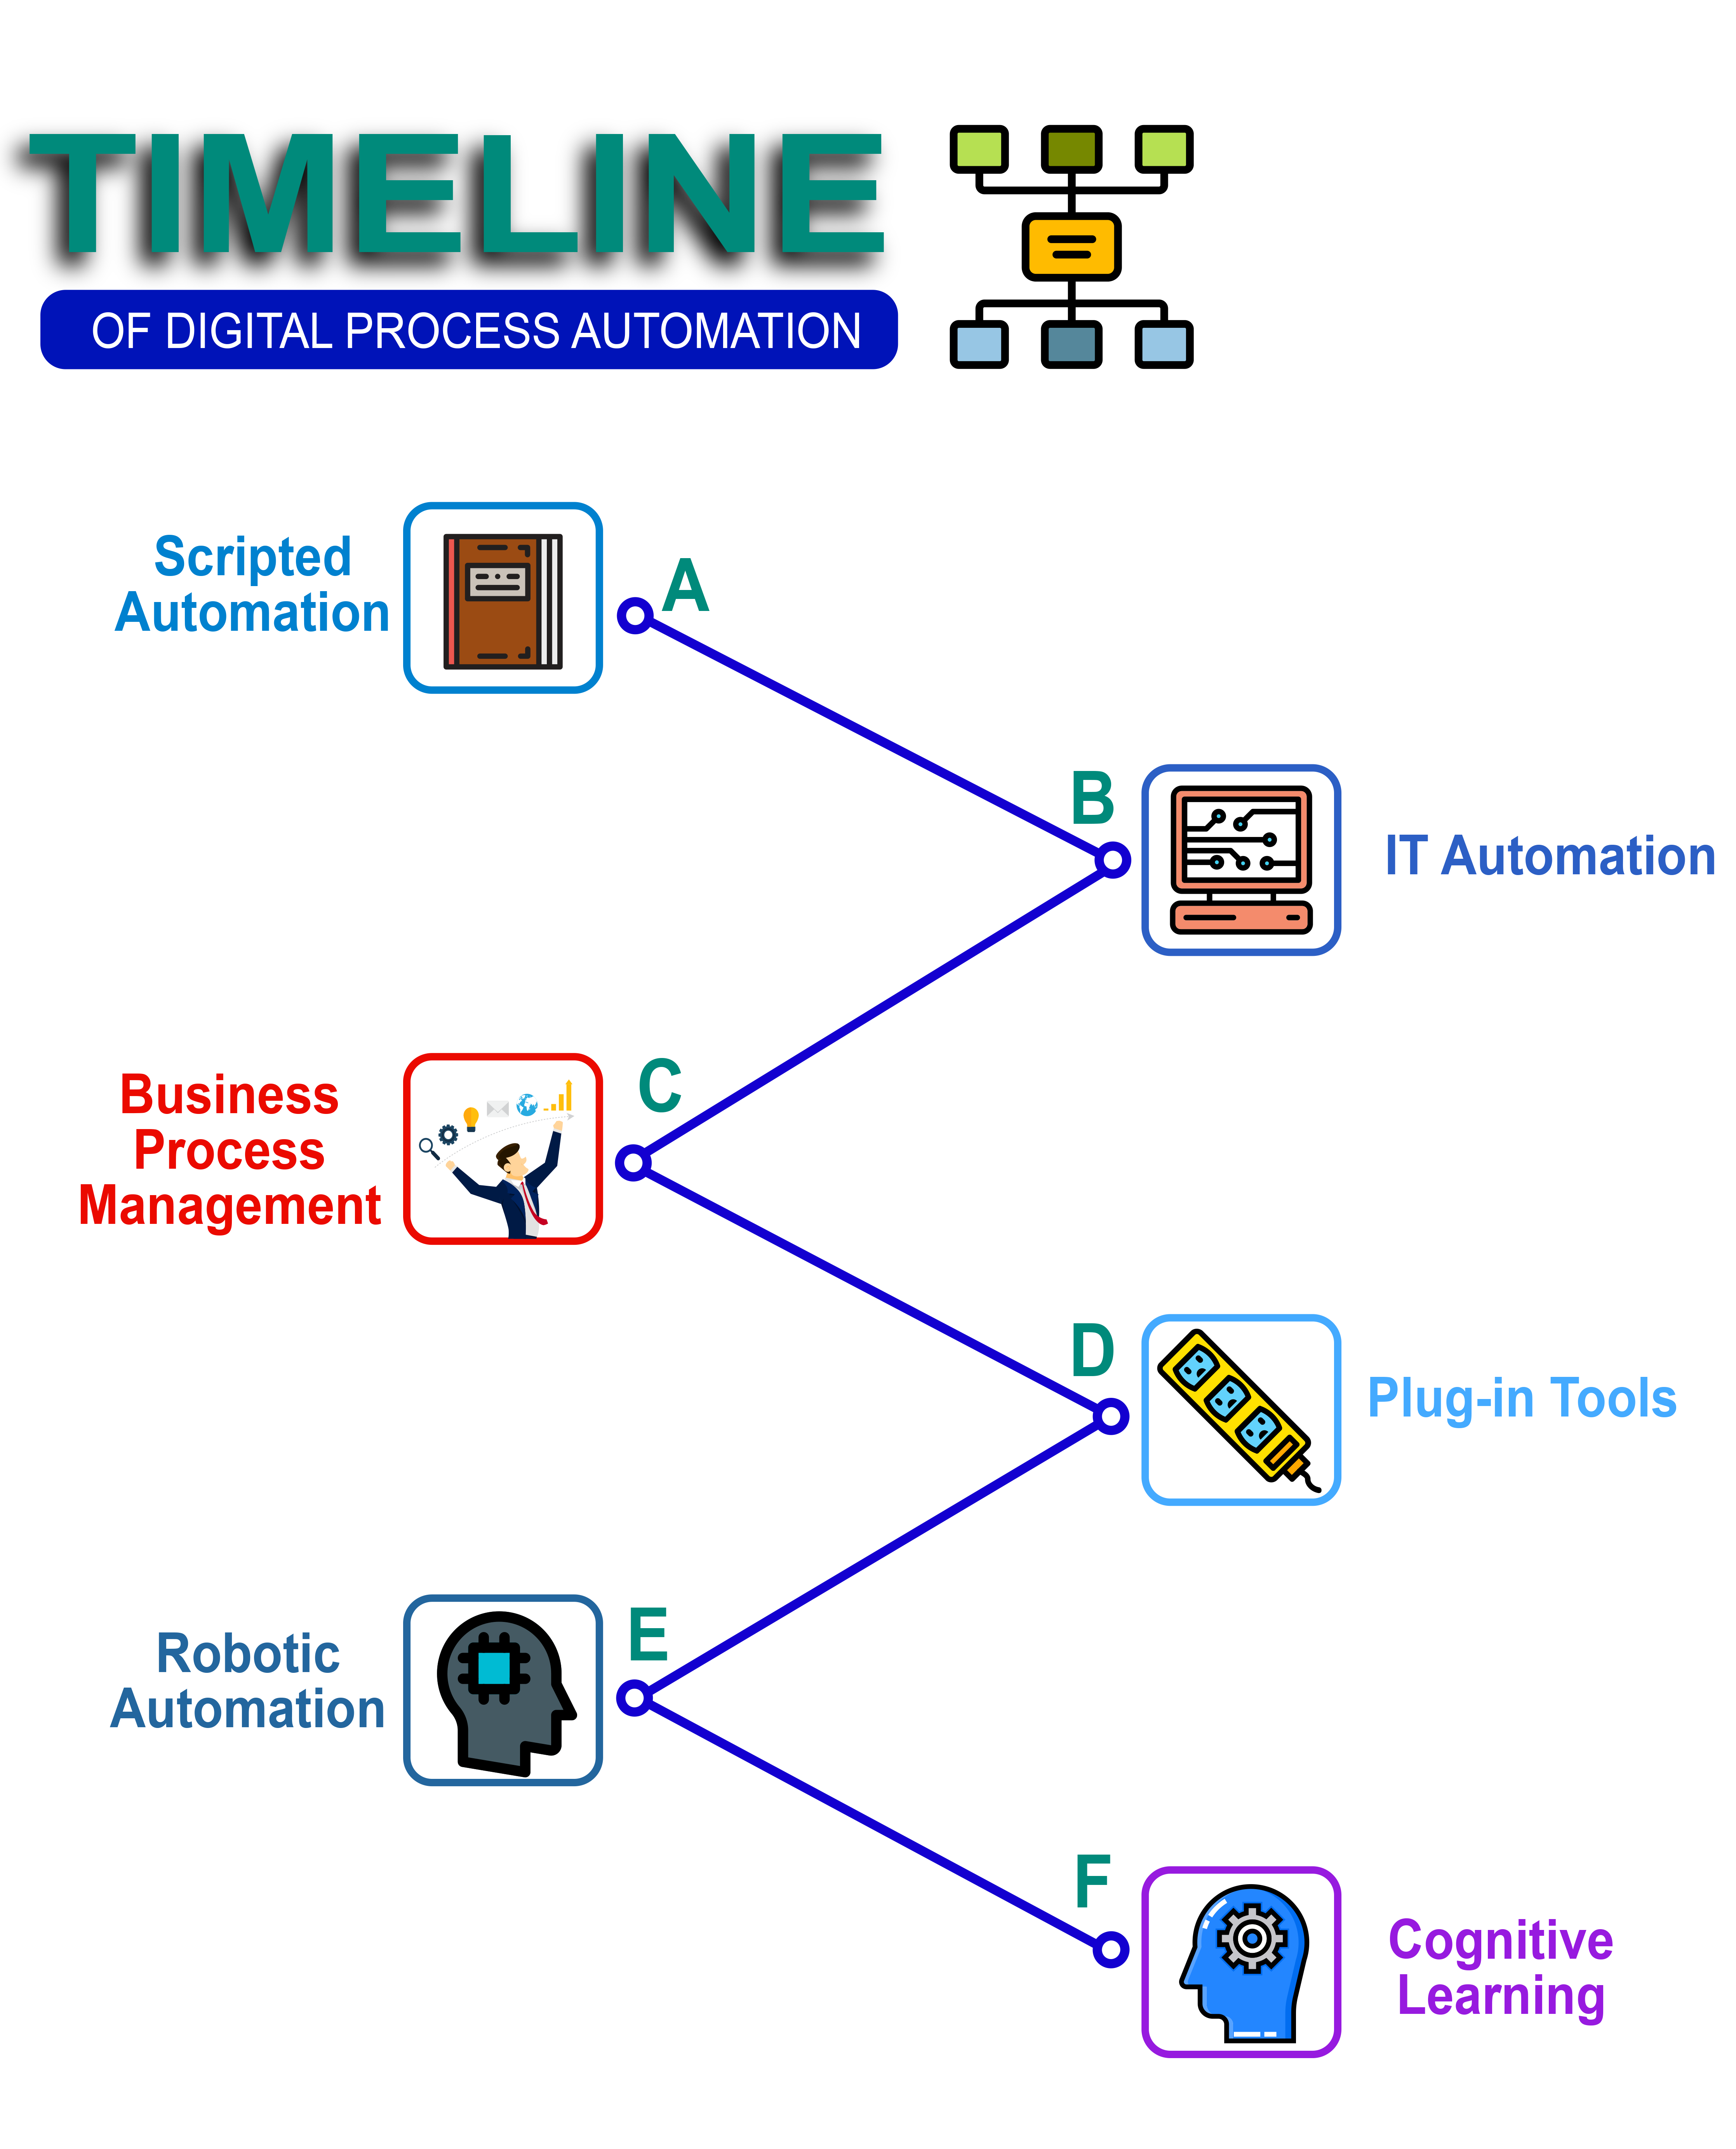 Fig 5, Timeline of DPA